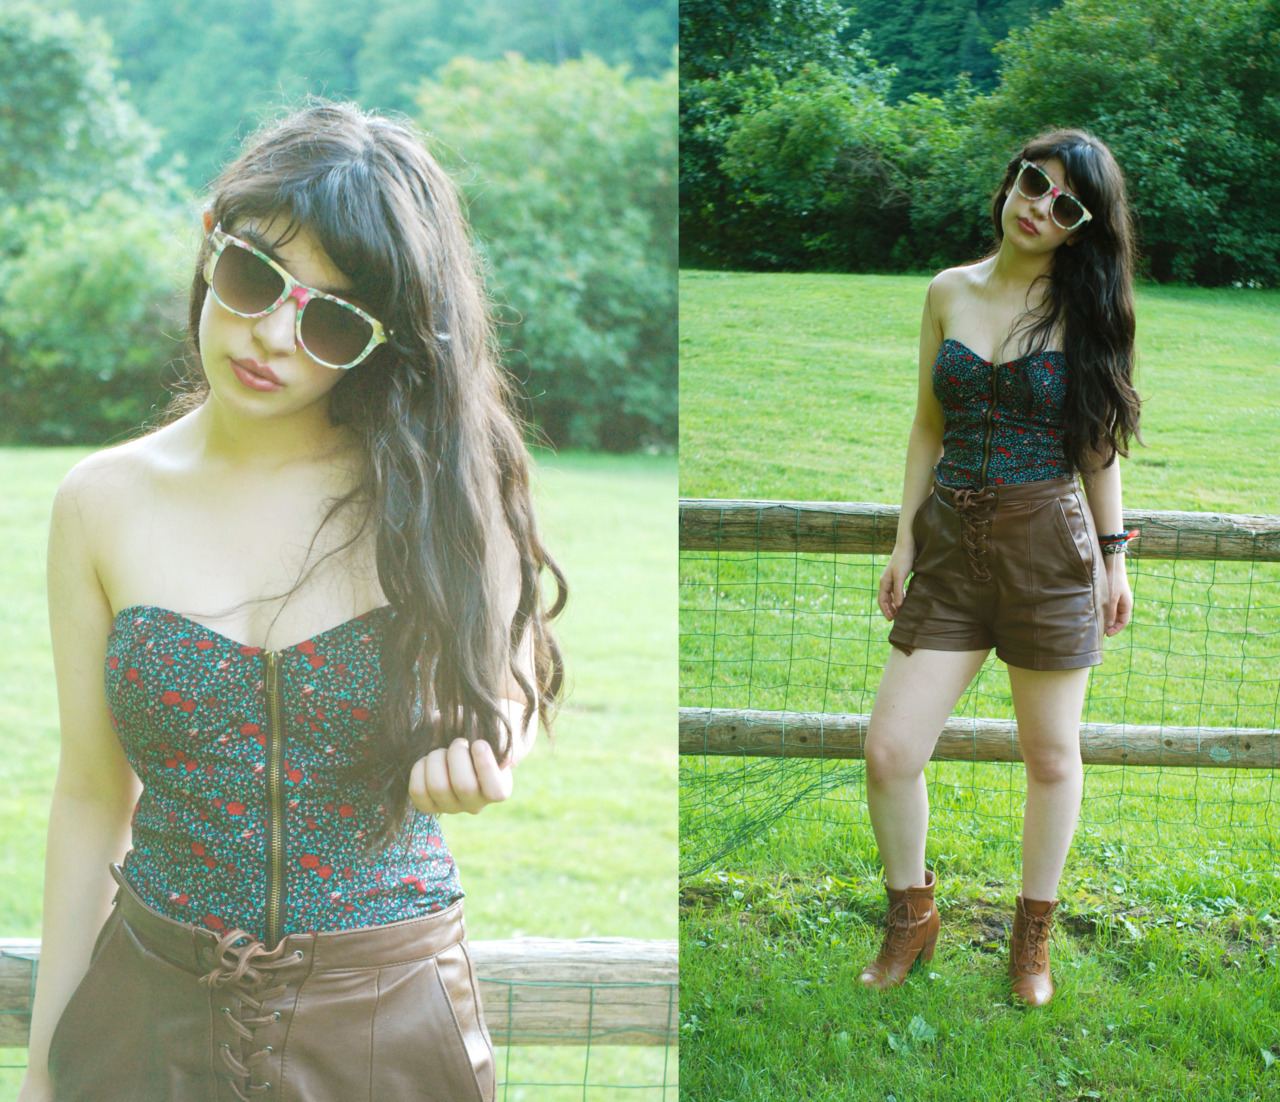 UO bustier, H&M leather shorts ahhhhhhh feels so weird putting up an outfit post at 11:41PM! OH P.S. LIFE TIP: leather shorts are ALWAYS A BAD IDEA on a mid-90s day :::::::::(